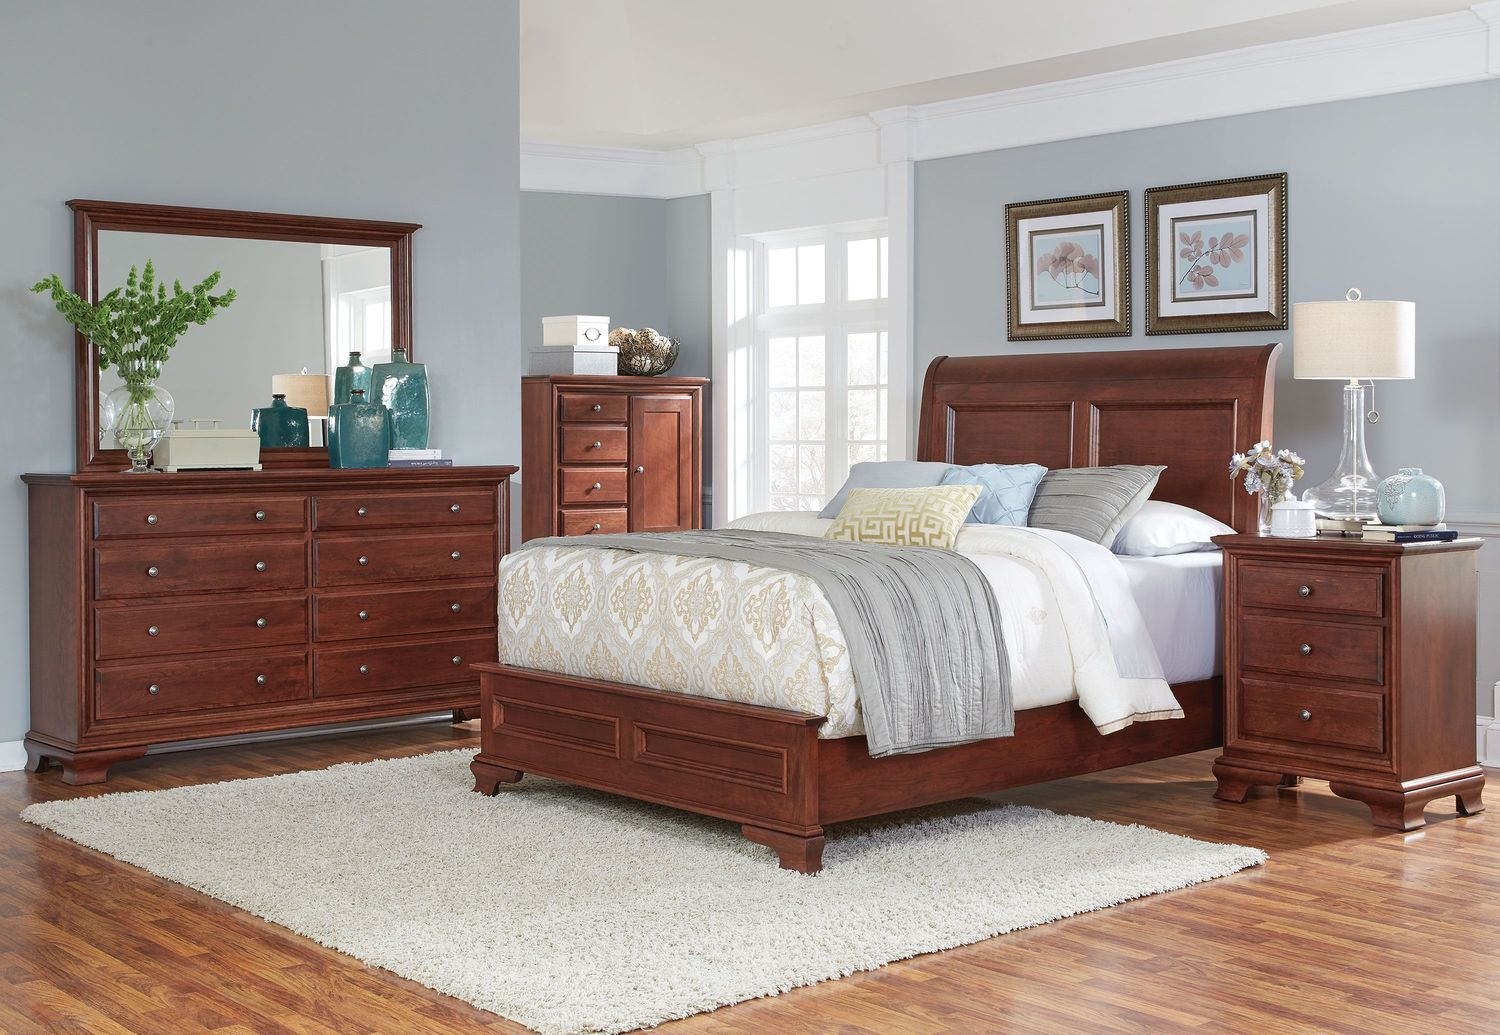 Amish Classic 4 Piece Queen Bedroom - Warm Brown